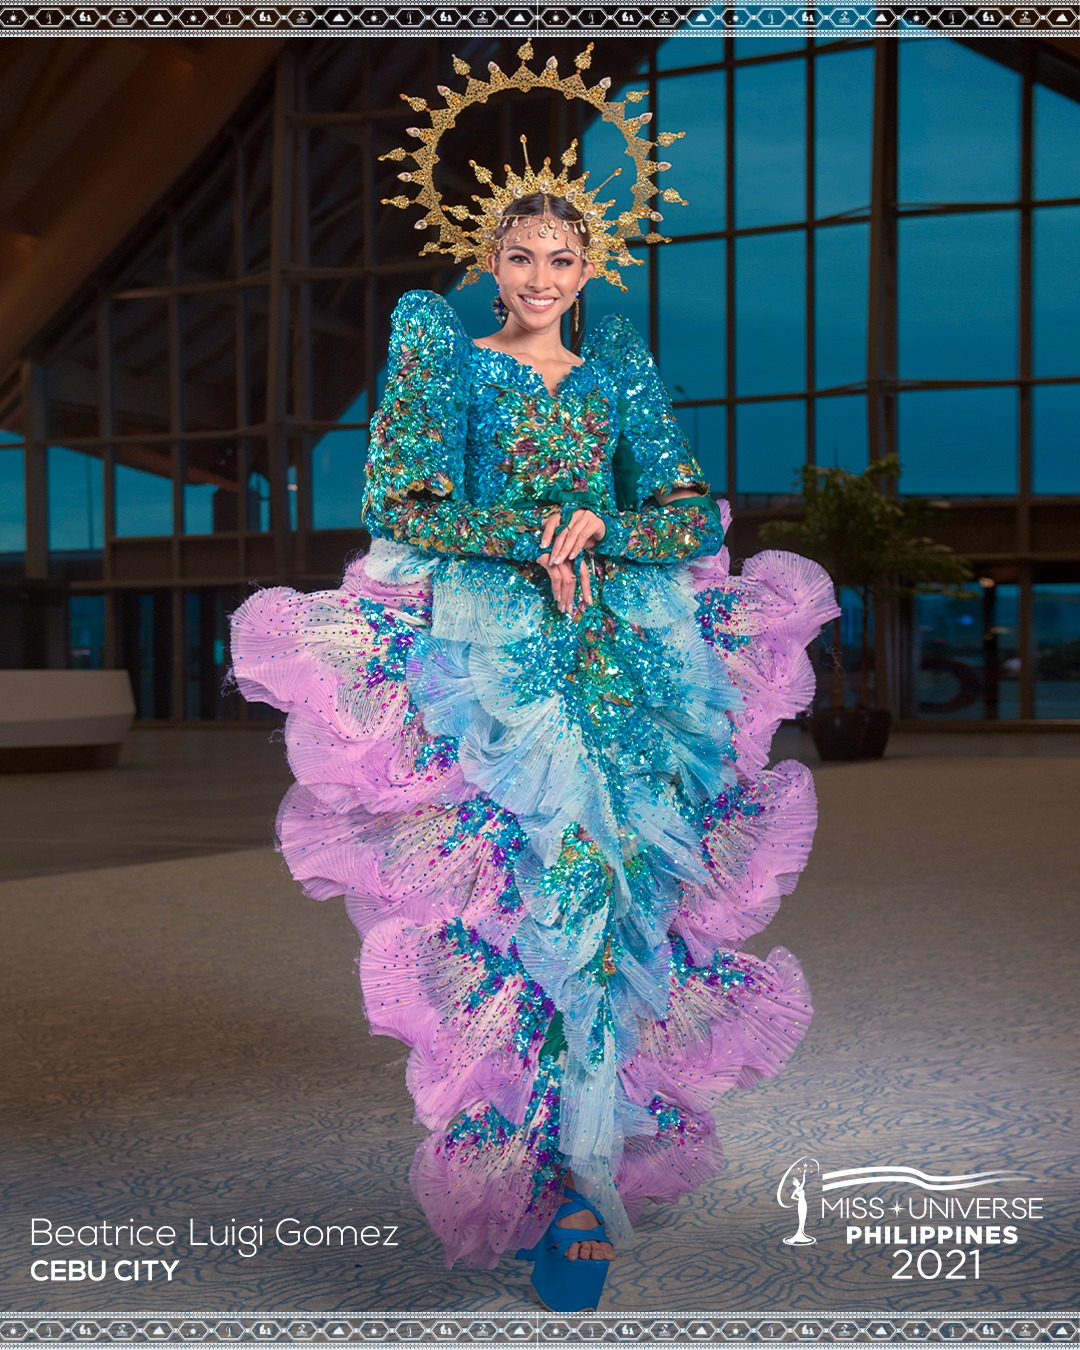 BEATRICE LUIGI GOMEZ- 10 OF THE BEST NATIONAL COSTUMES TO WALK THE MISS UNIVERSE PHILIPPINES 2021 STAGE